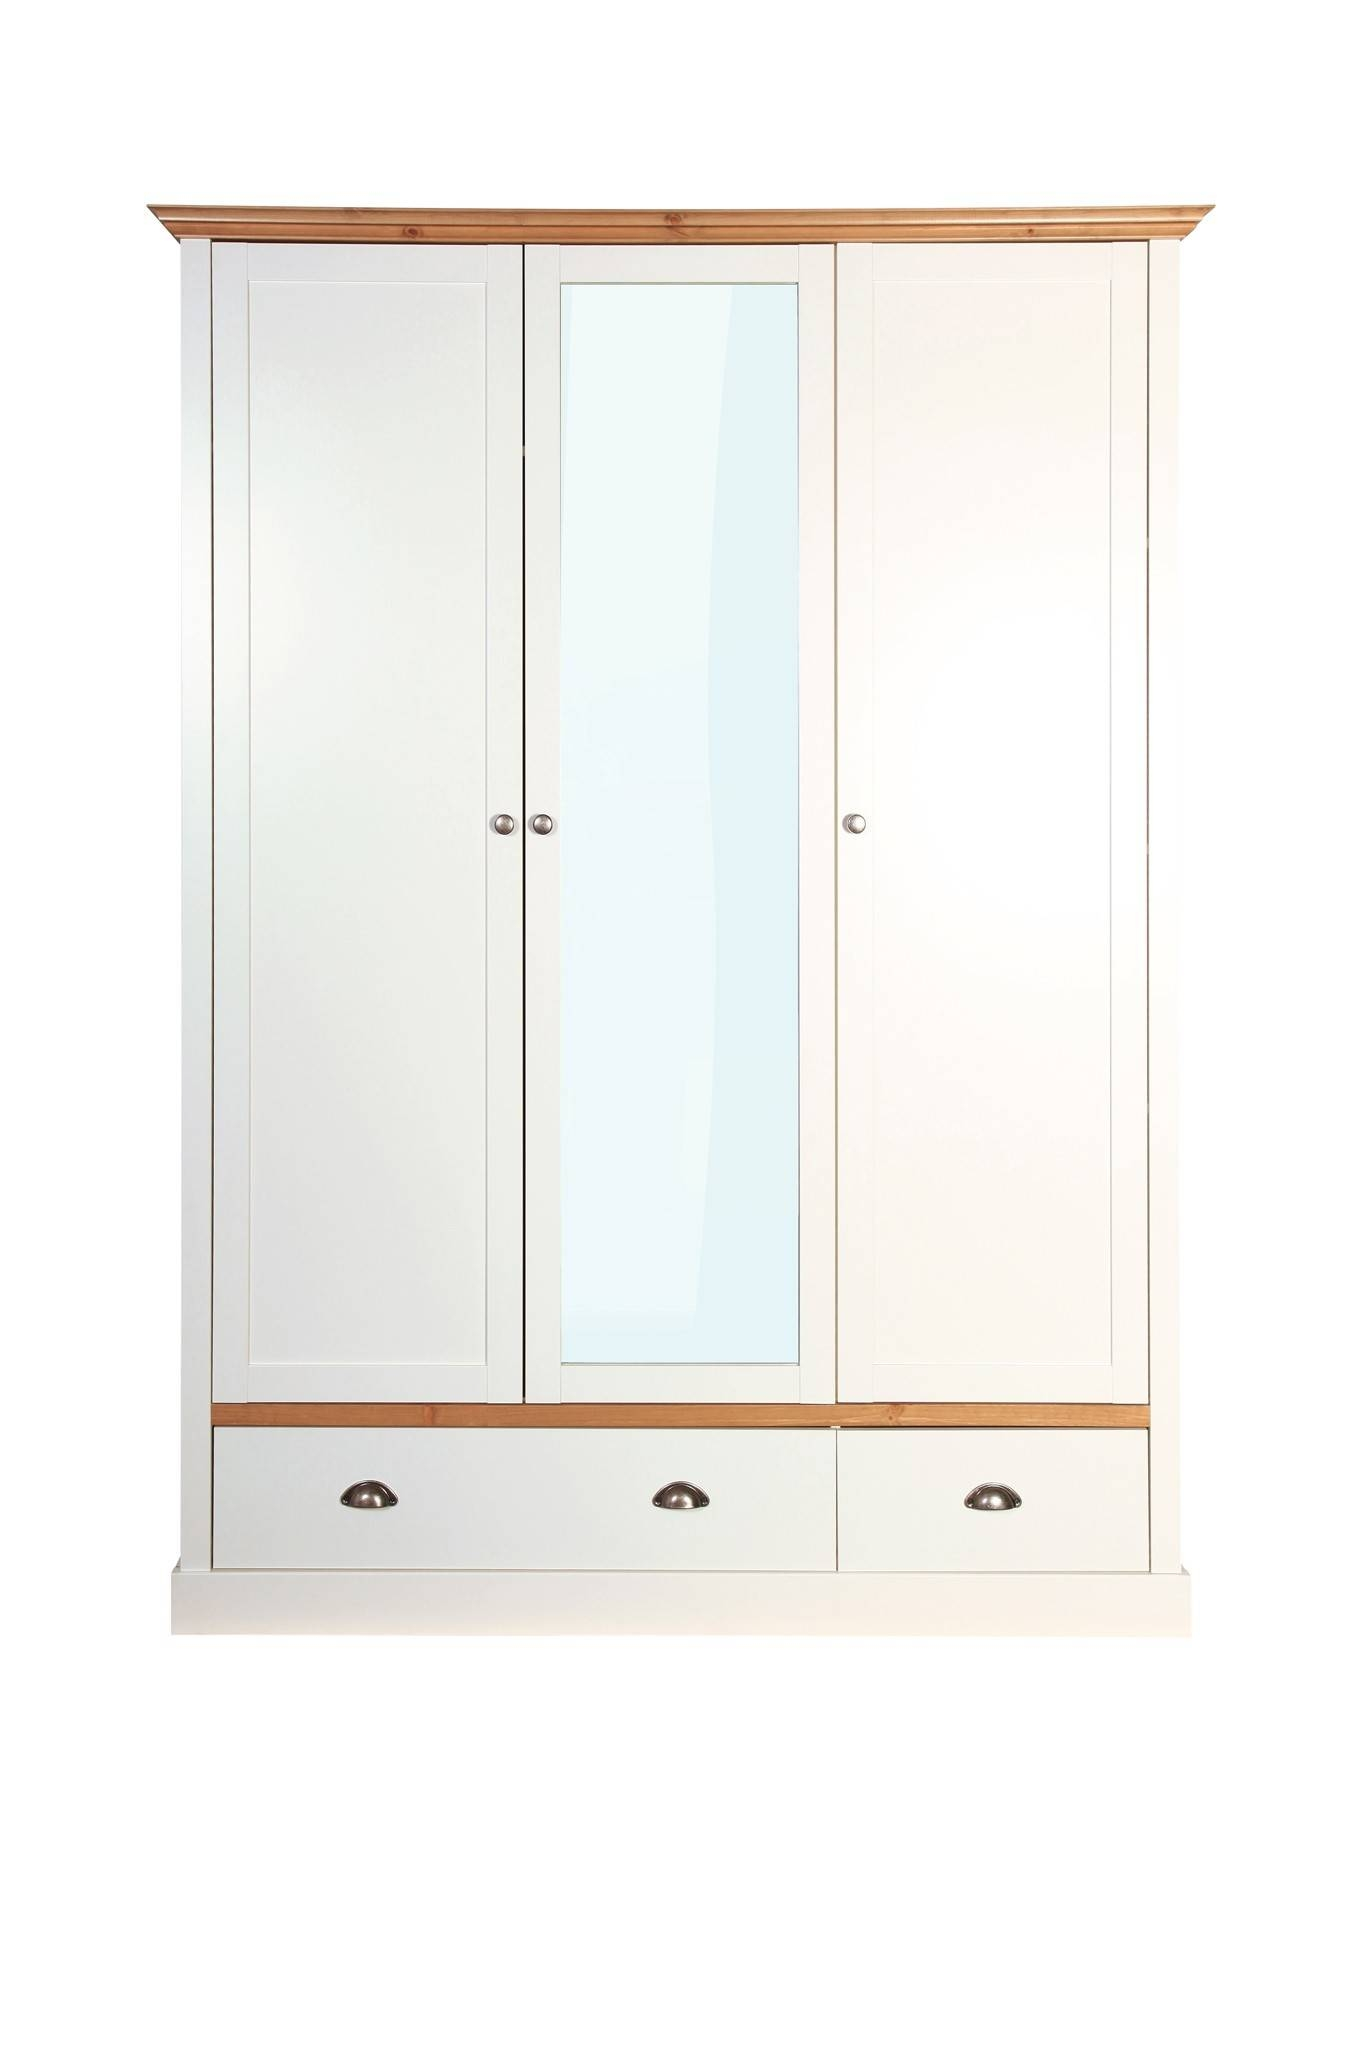 Sandringham 3 Door 2 Drawer Wardrobe White From The Original within 3 Door White Wardrobes (Image 20 of 30)